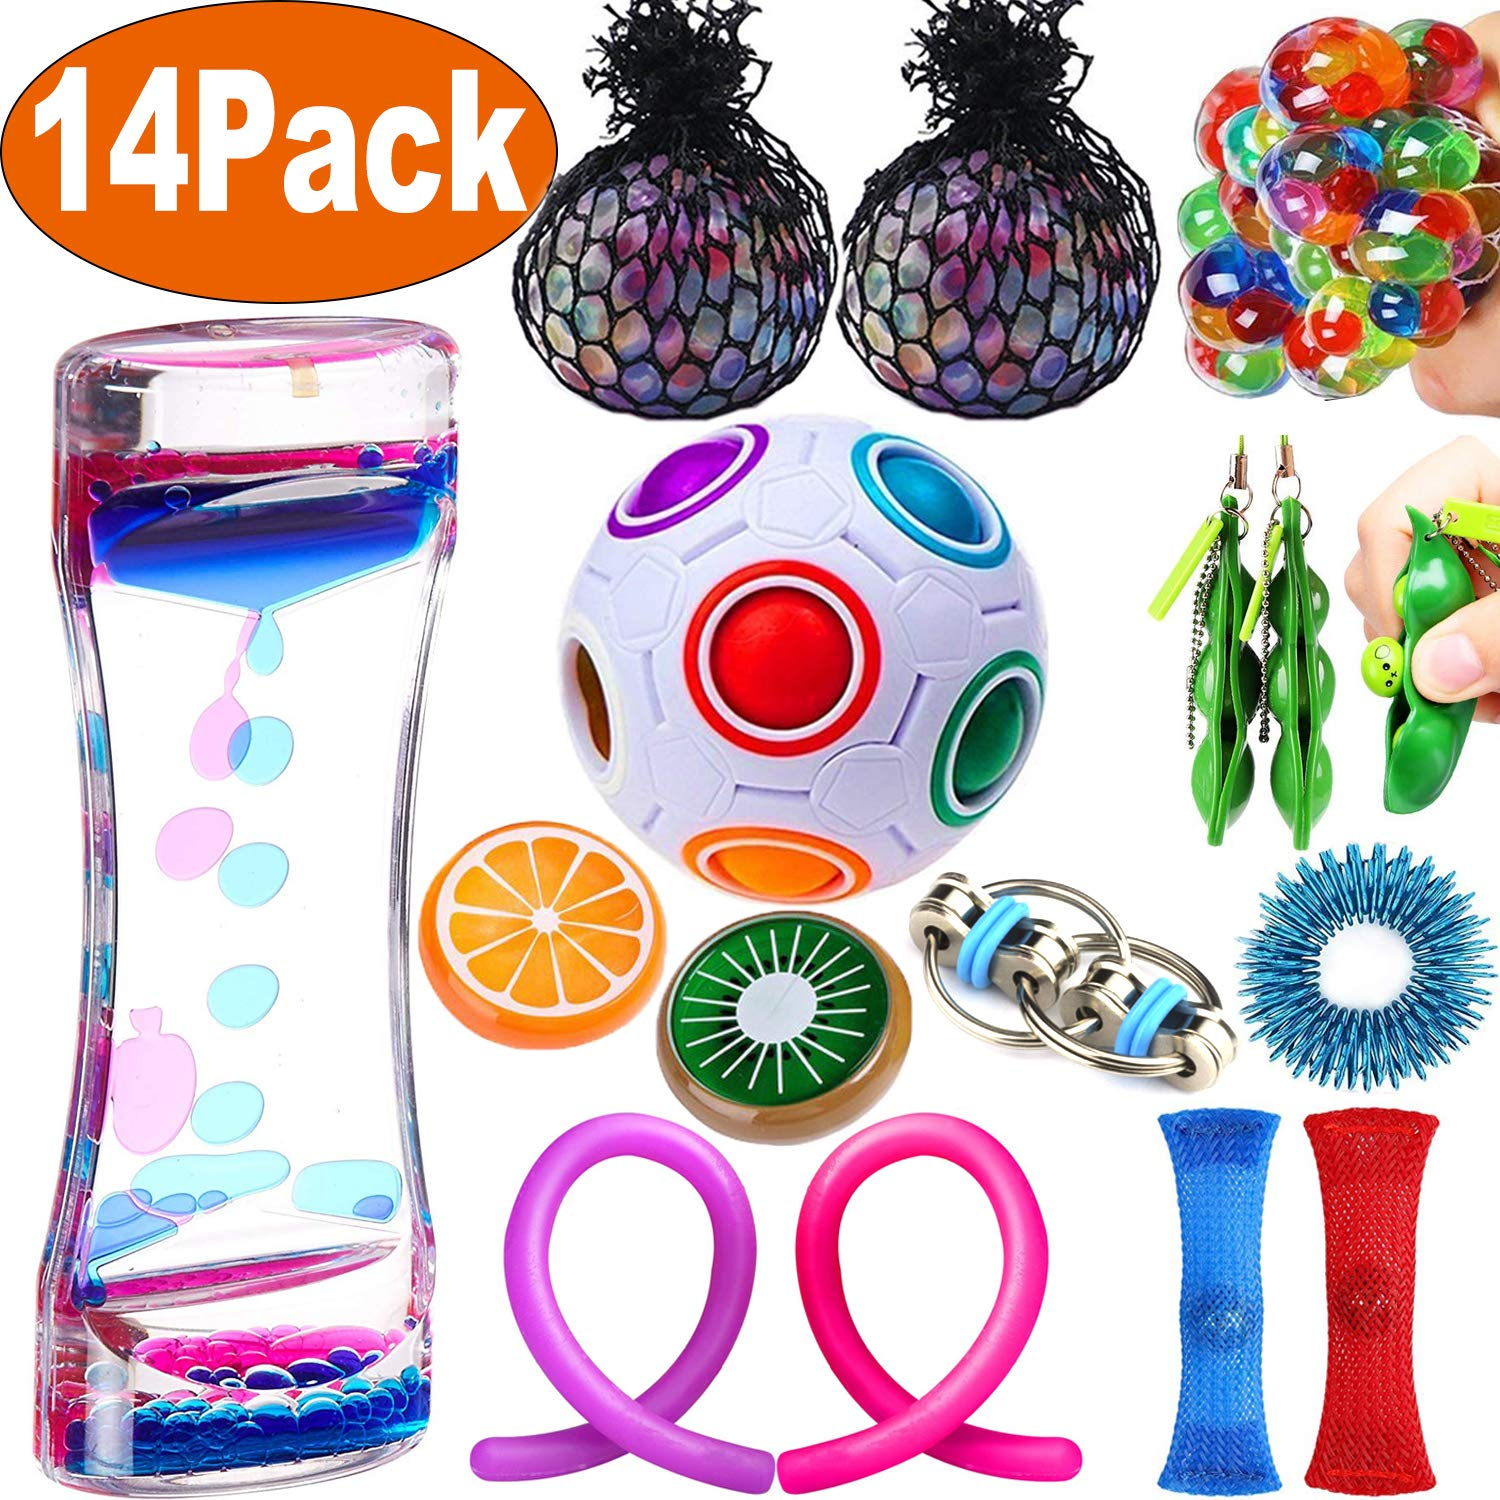 14 Pack Sensory Fidget Toys Bundle Liquid Motion Timer Bubbler Stretchy String Mesh Squeeze Balls Magic Cube Fruit Slime Stress Relieve Toys Halloween Party Favors for Kids Adult Autistic ADHD Anxiety MAXSASI